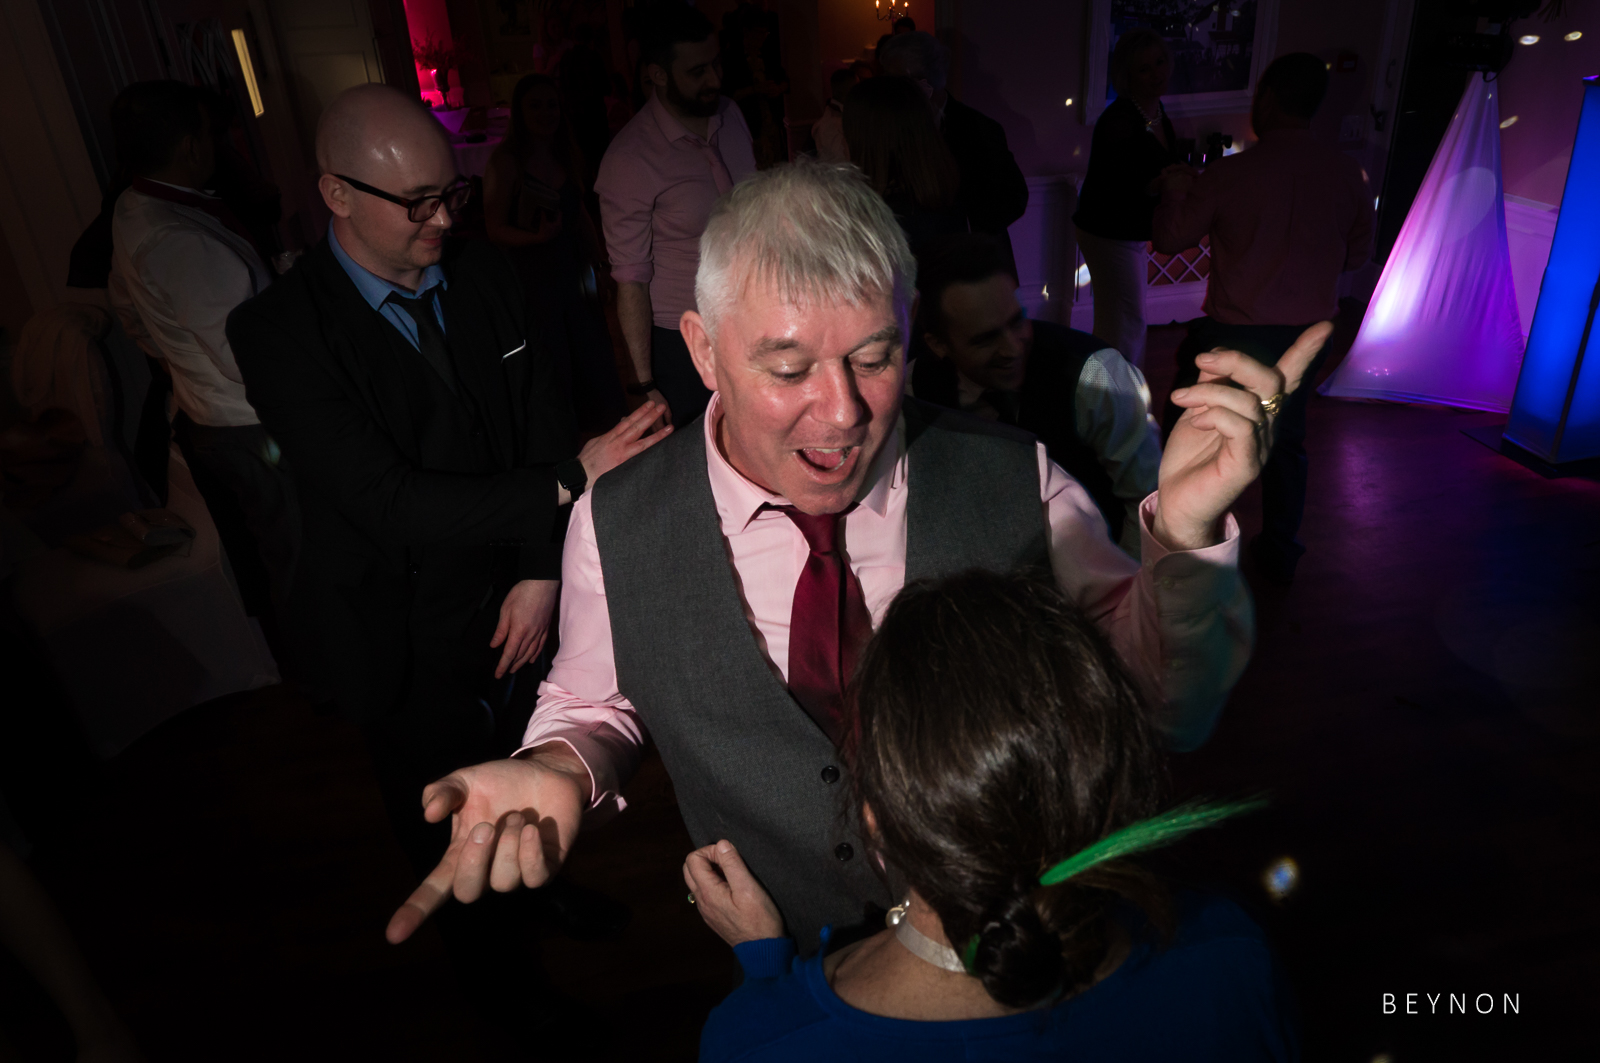 Wedding guest with good dance moves